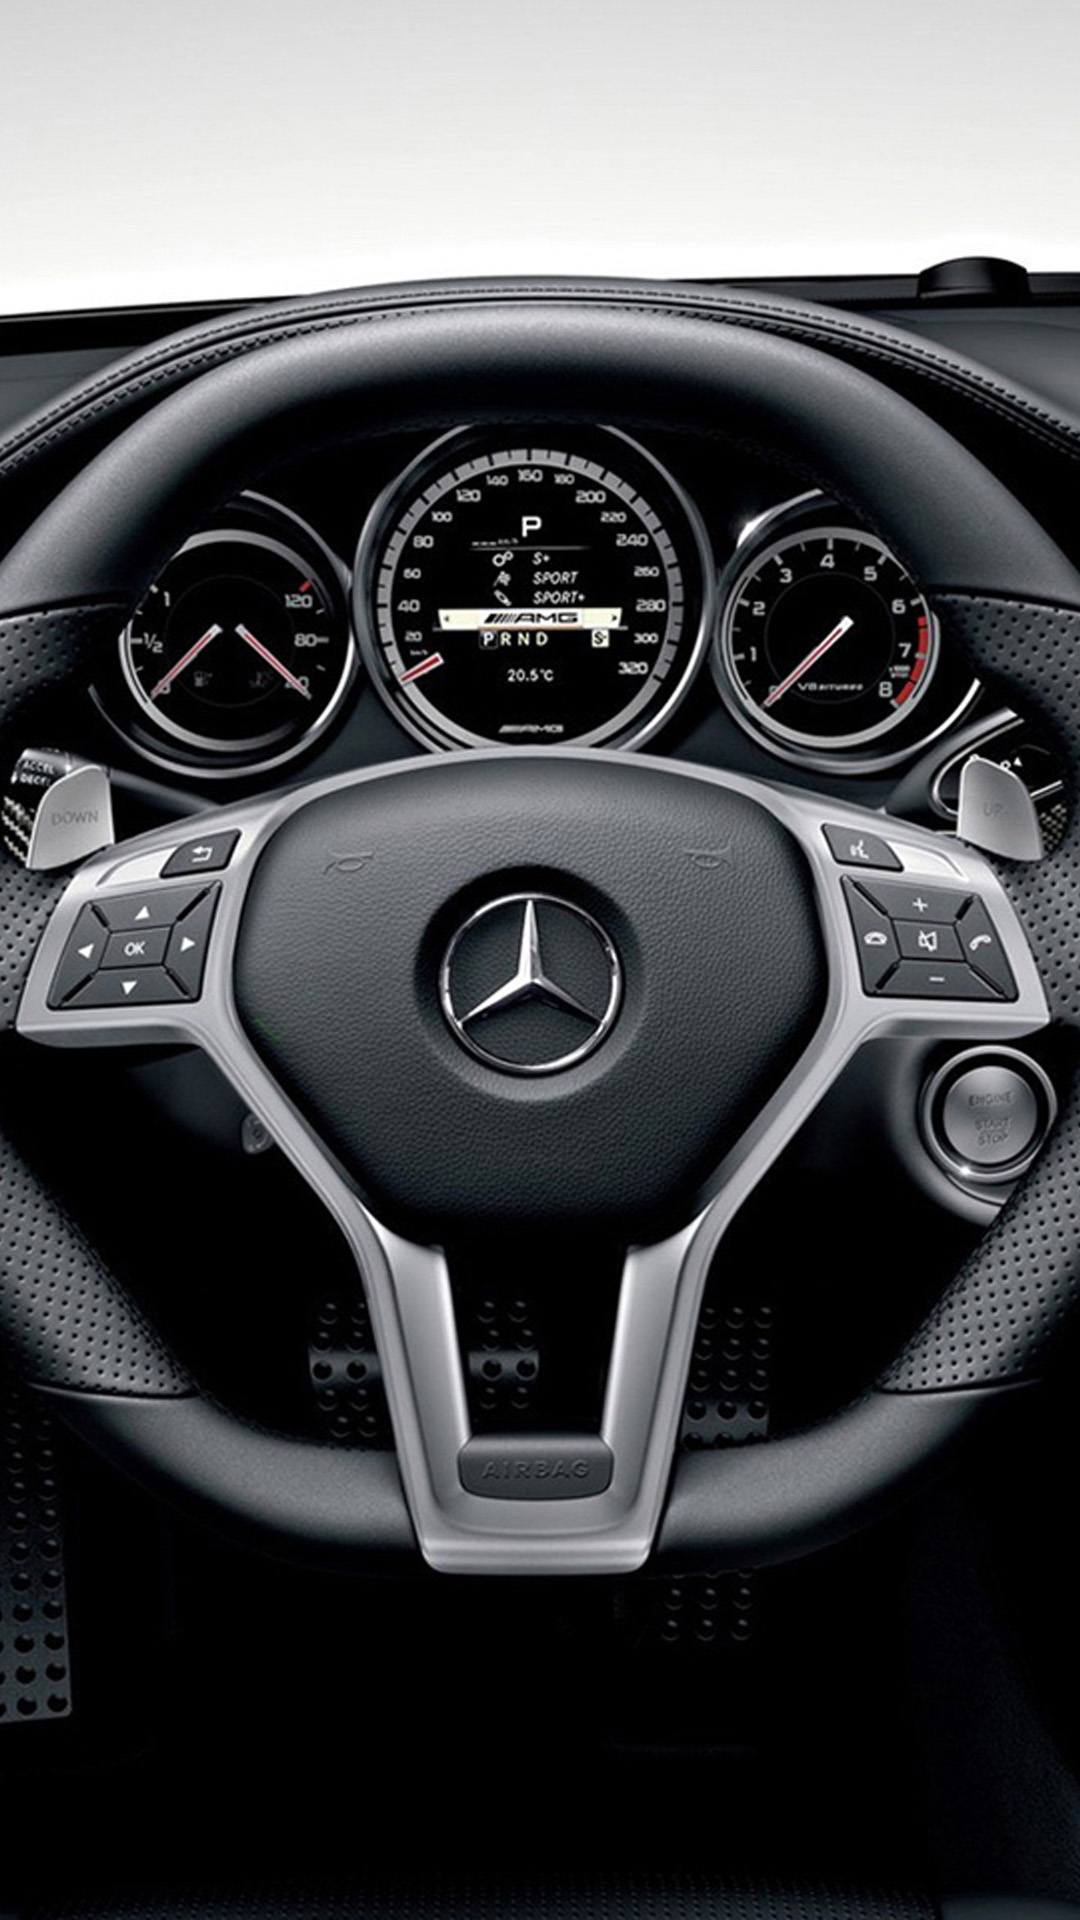 Mercedes benz cls63 amg interior hd wallpaper iphone 6 for Www mercedes benz mobile com iphone